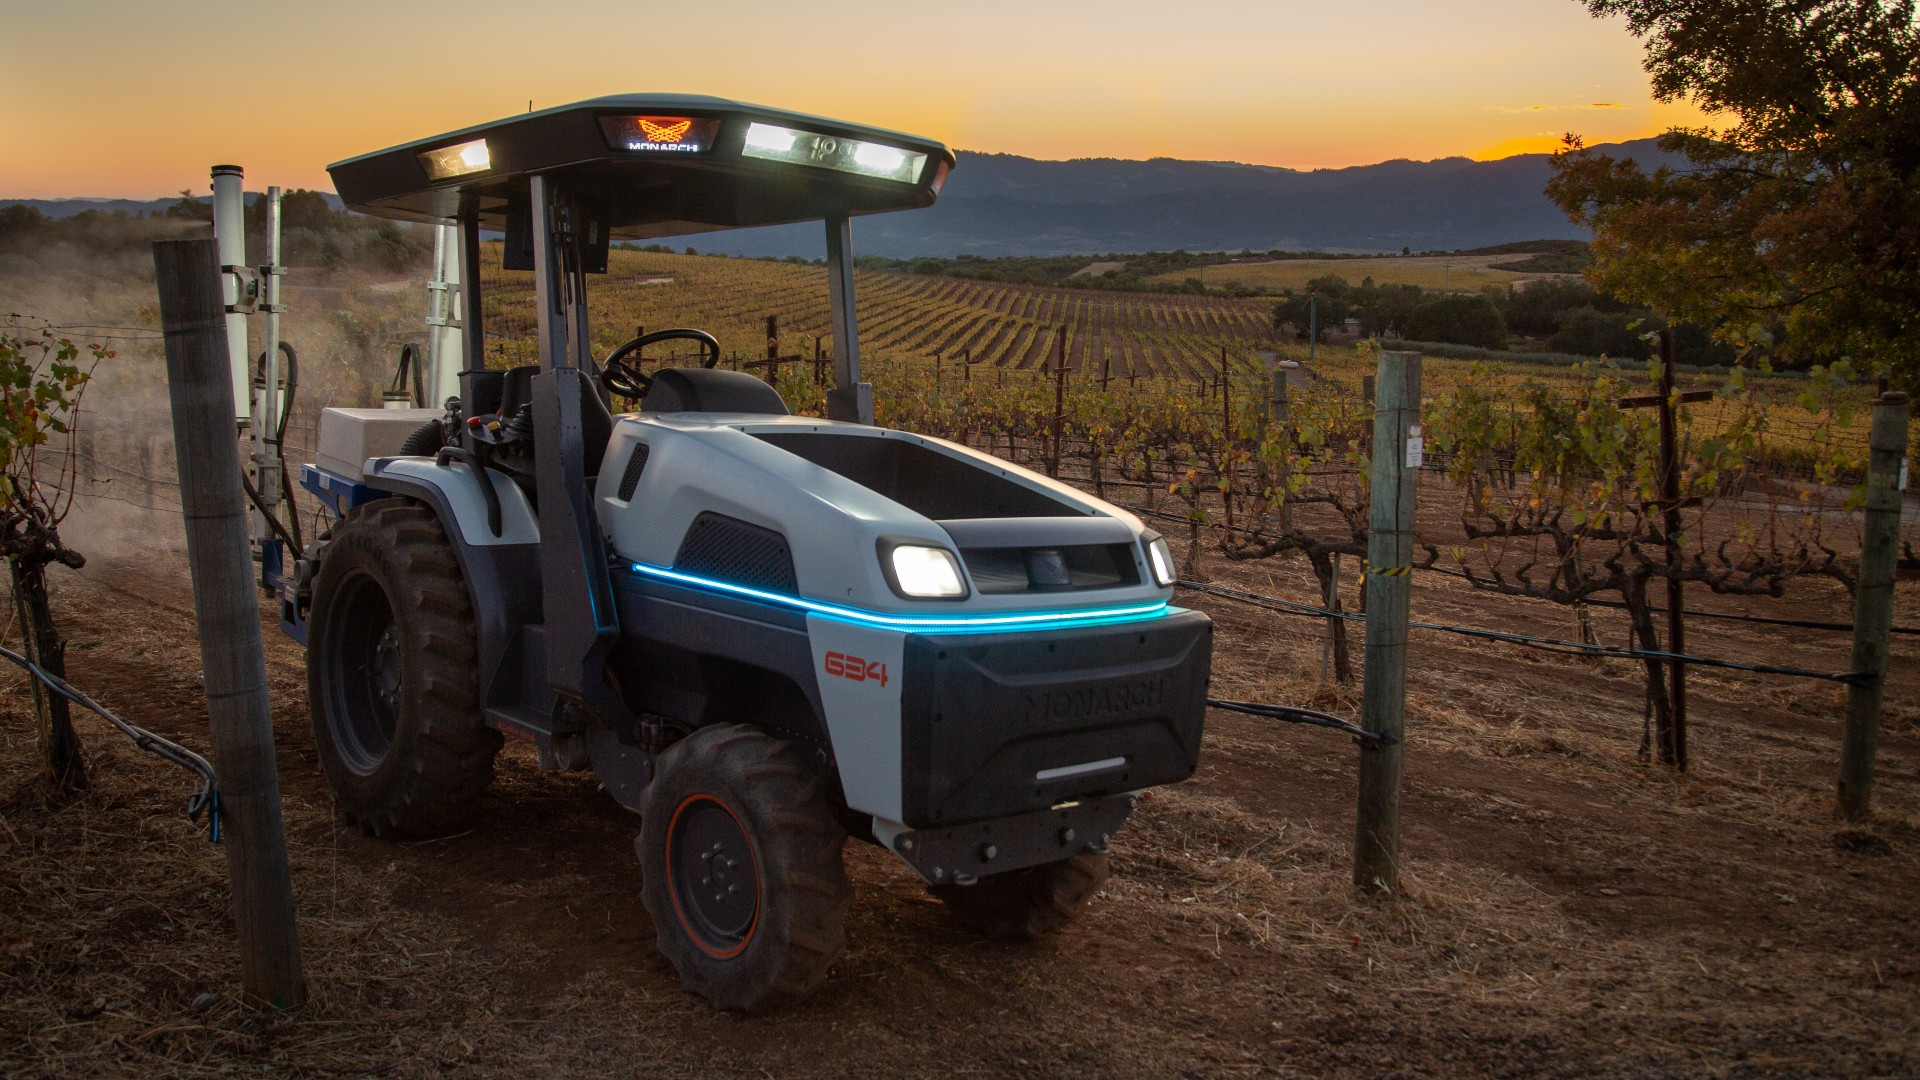 Electric Monarch tractor can plow a field without a driver and run for ten hours